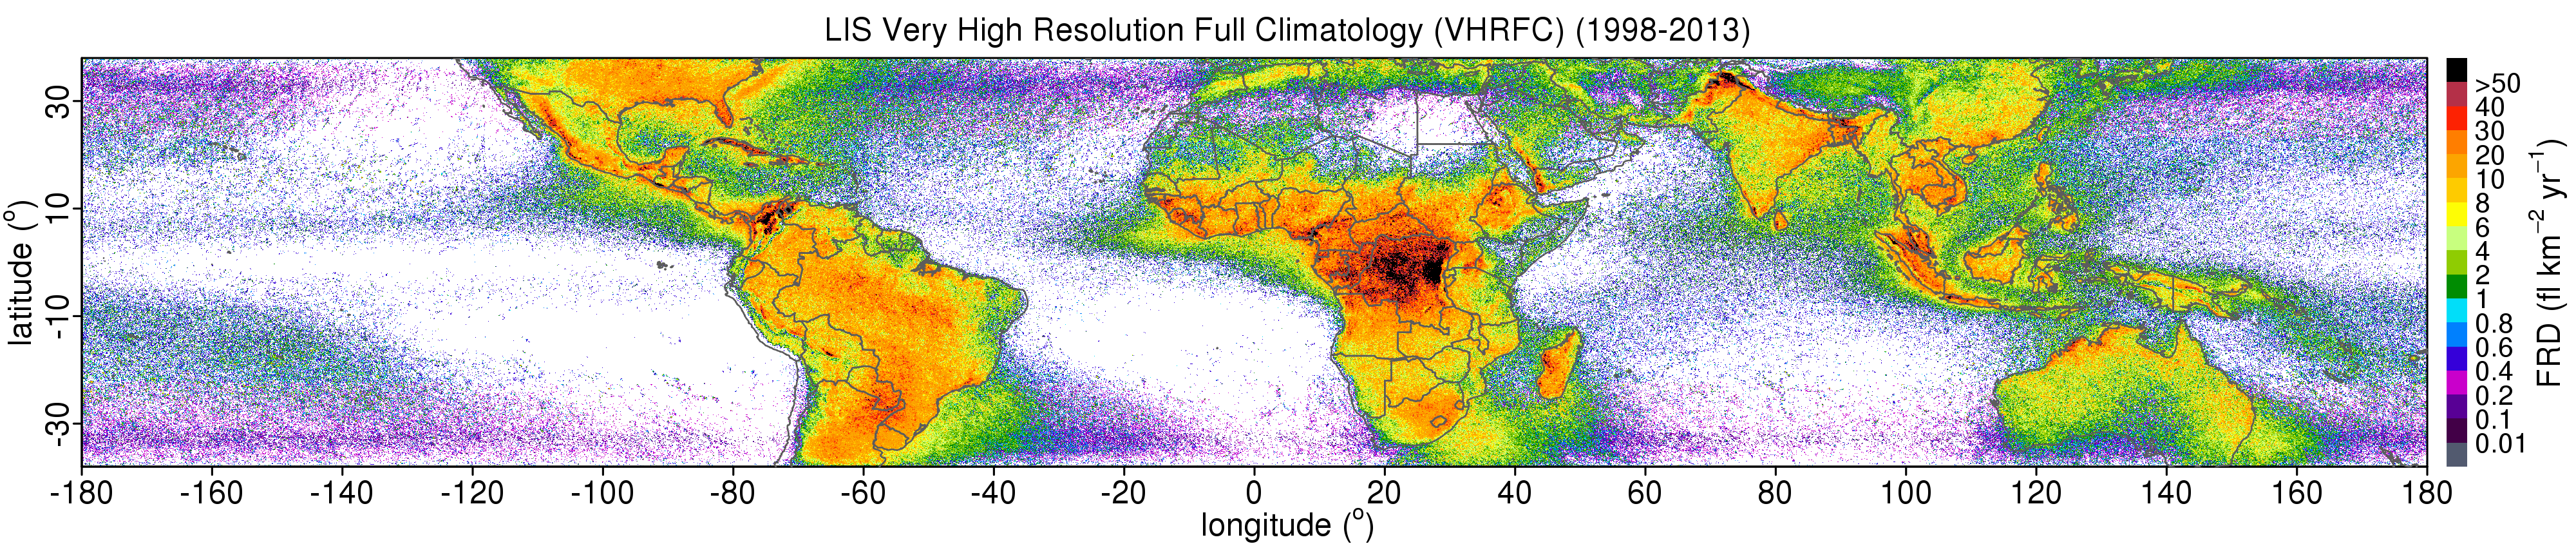 LIS Very High Resolution Climatology